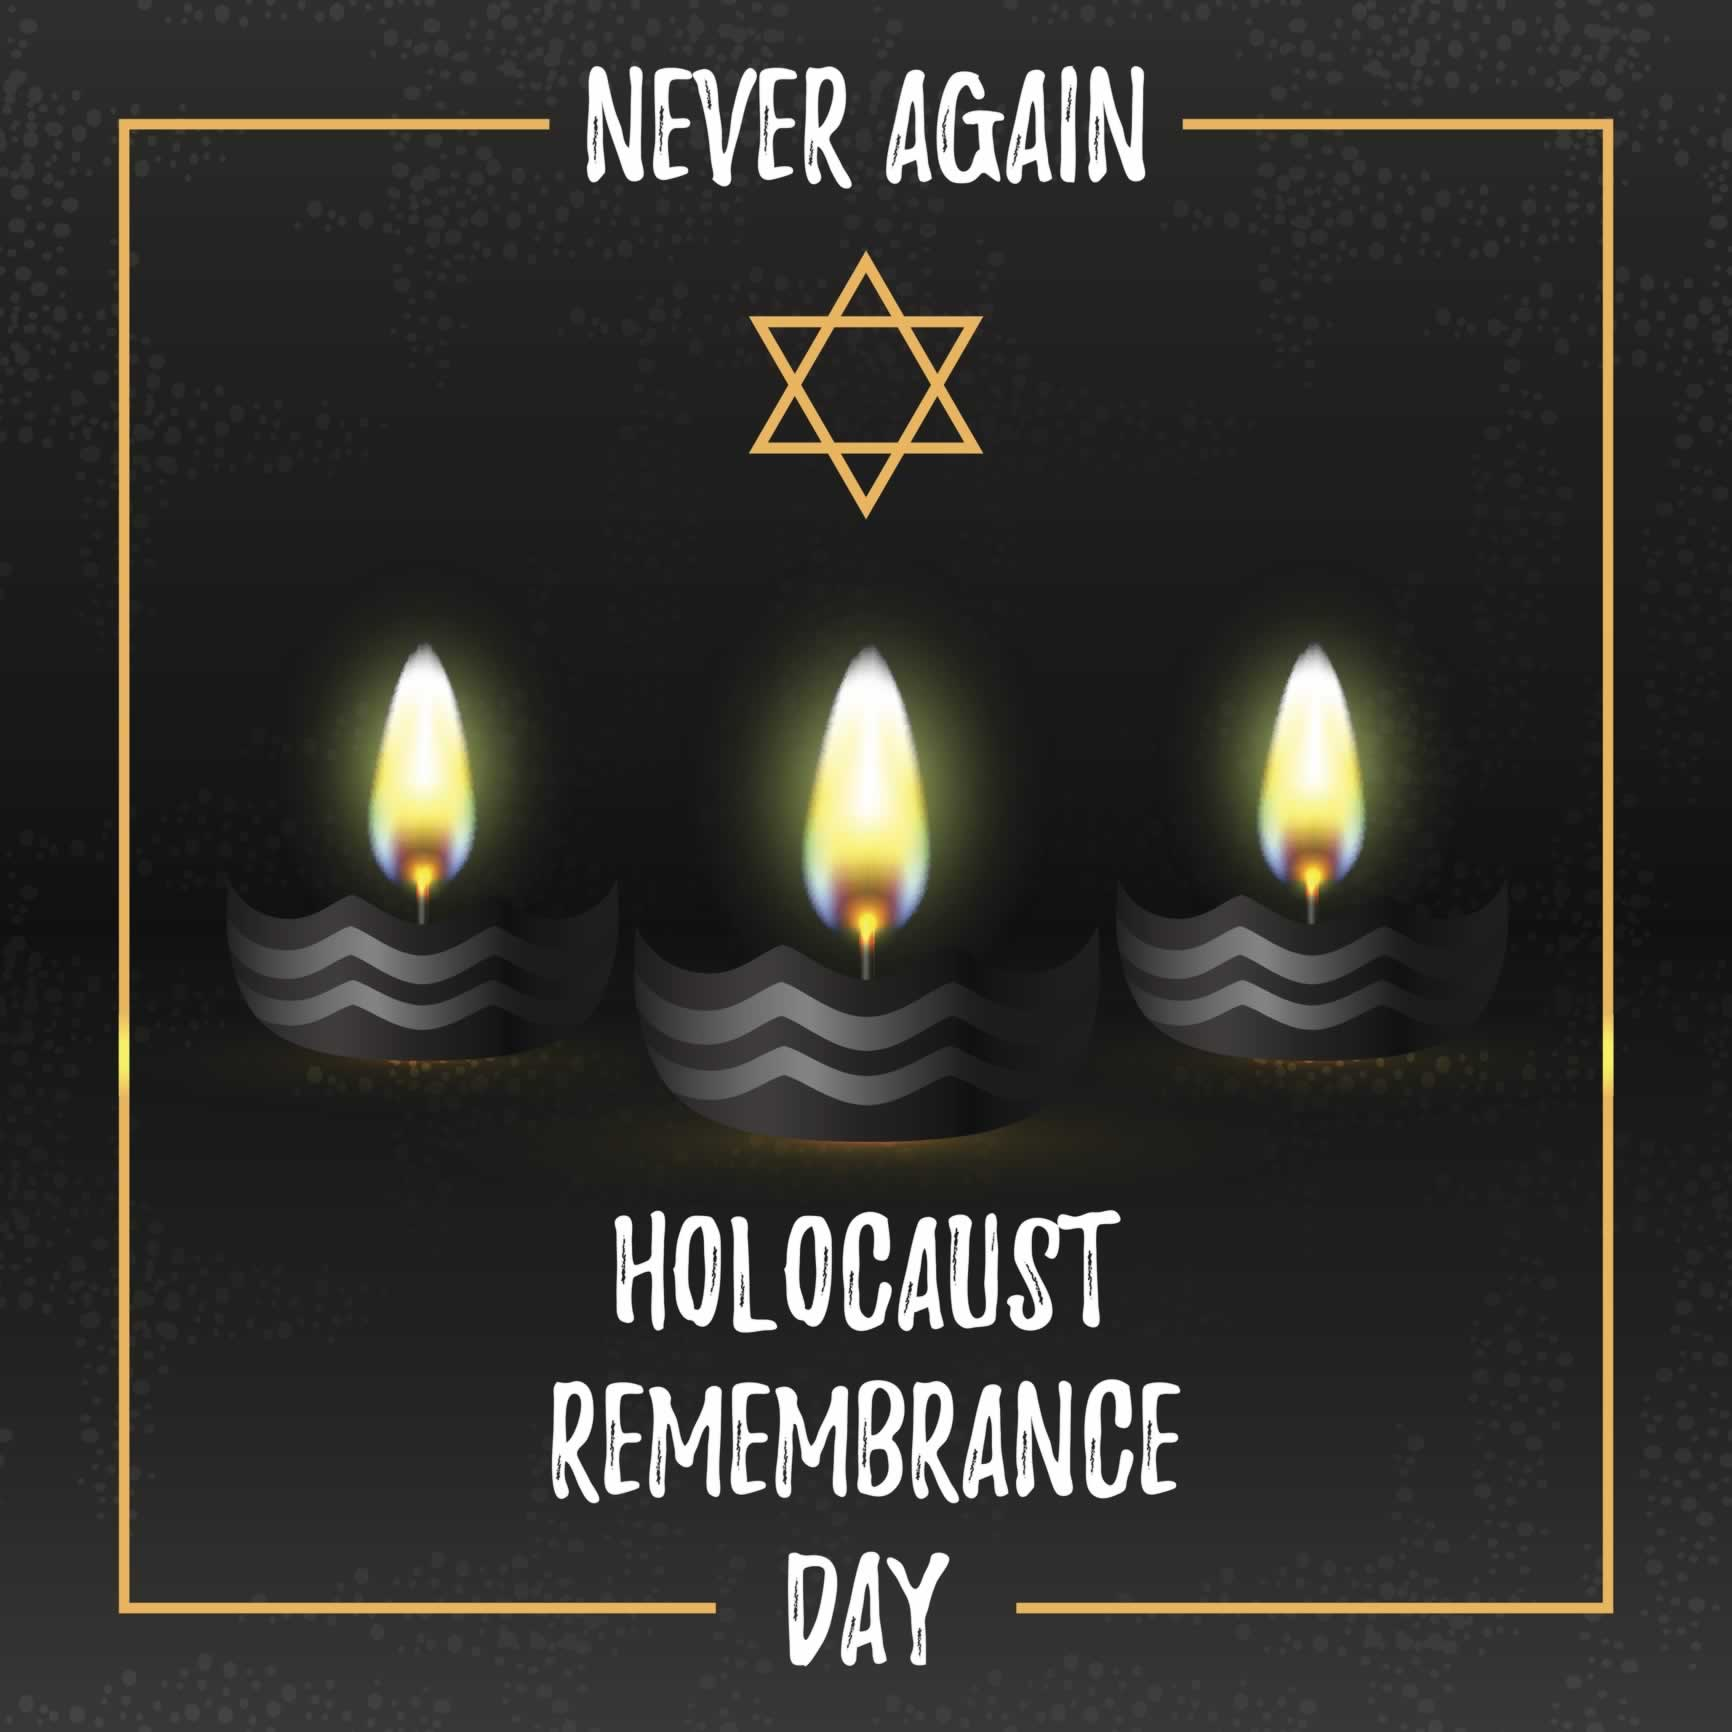 Never Again - Holocaust Remembrance Day